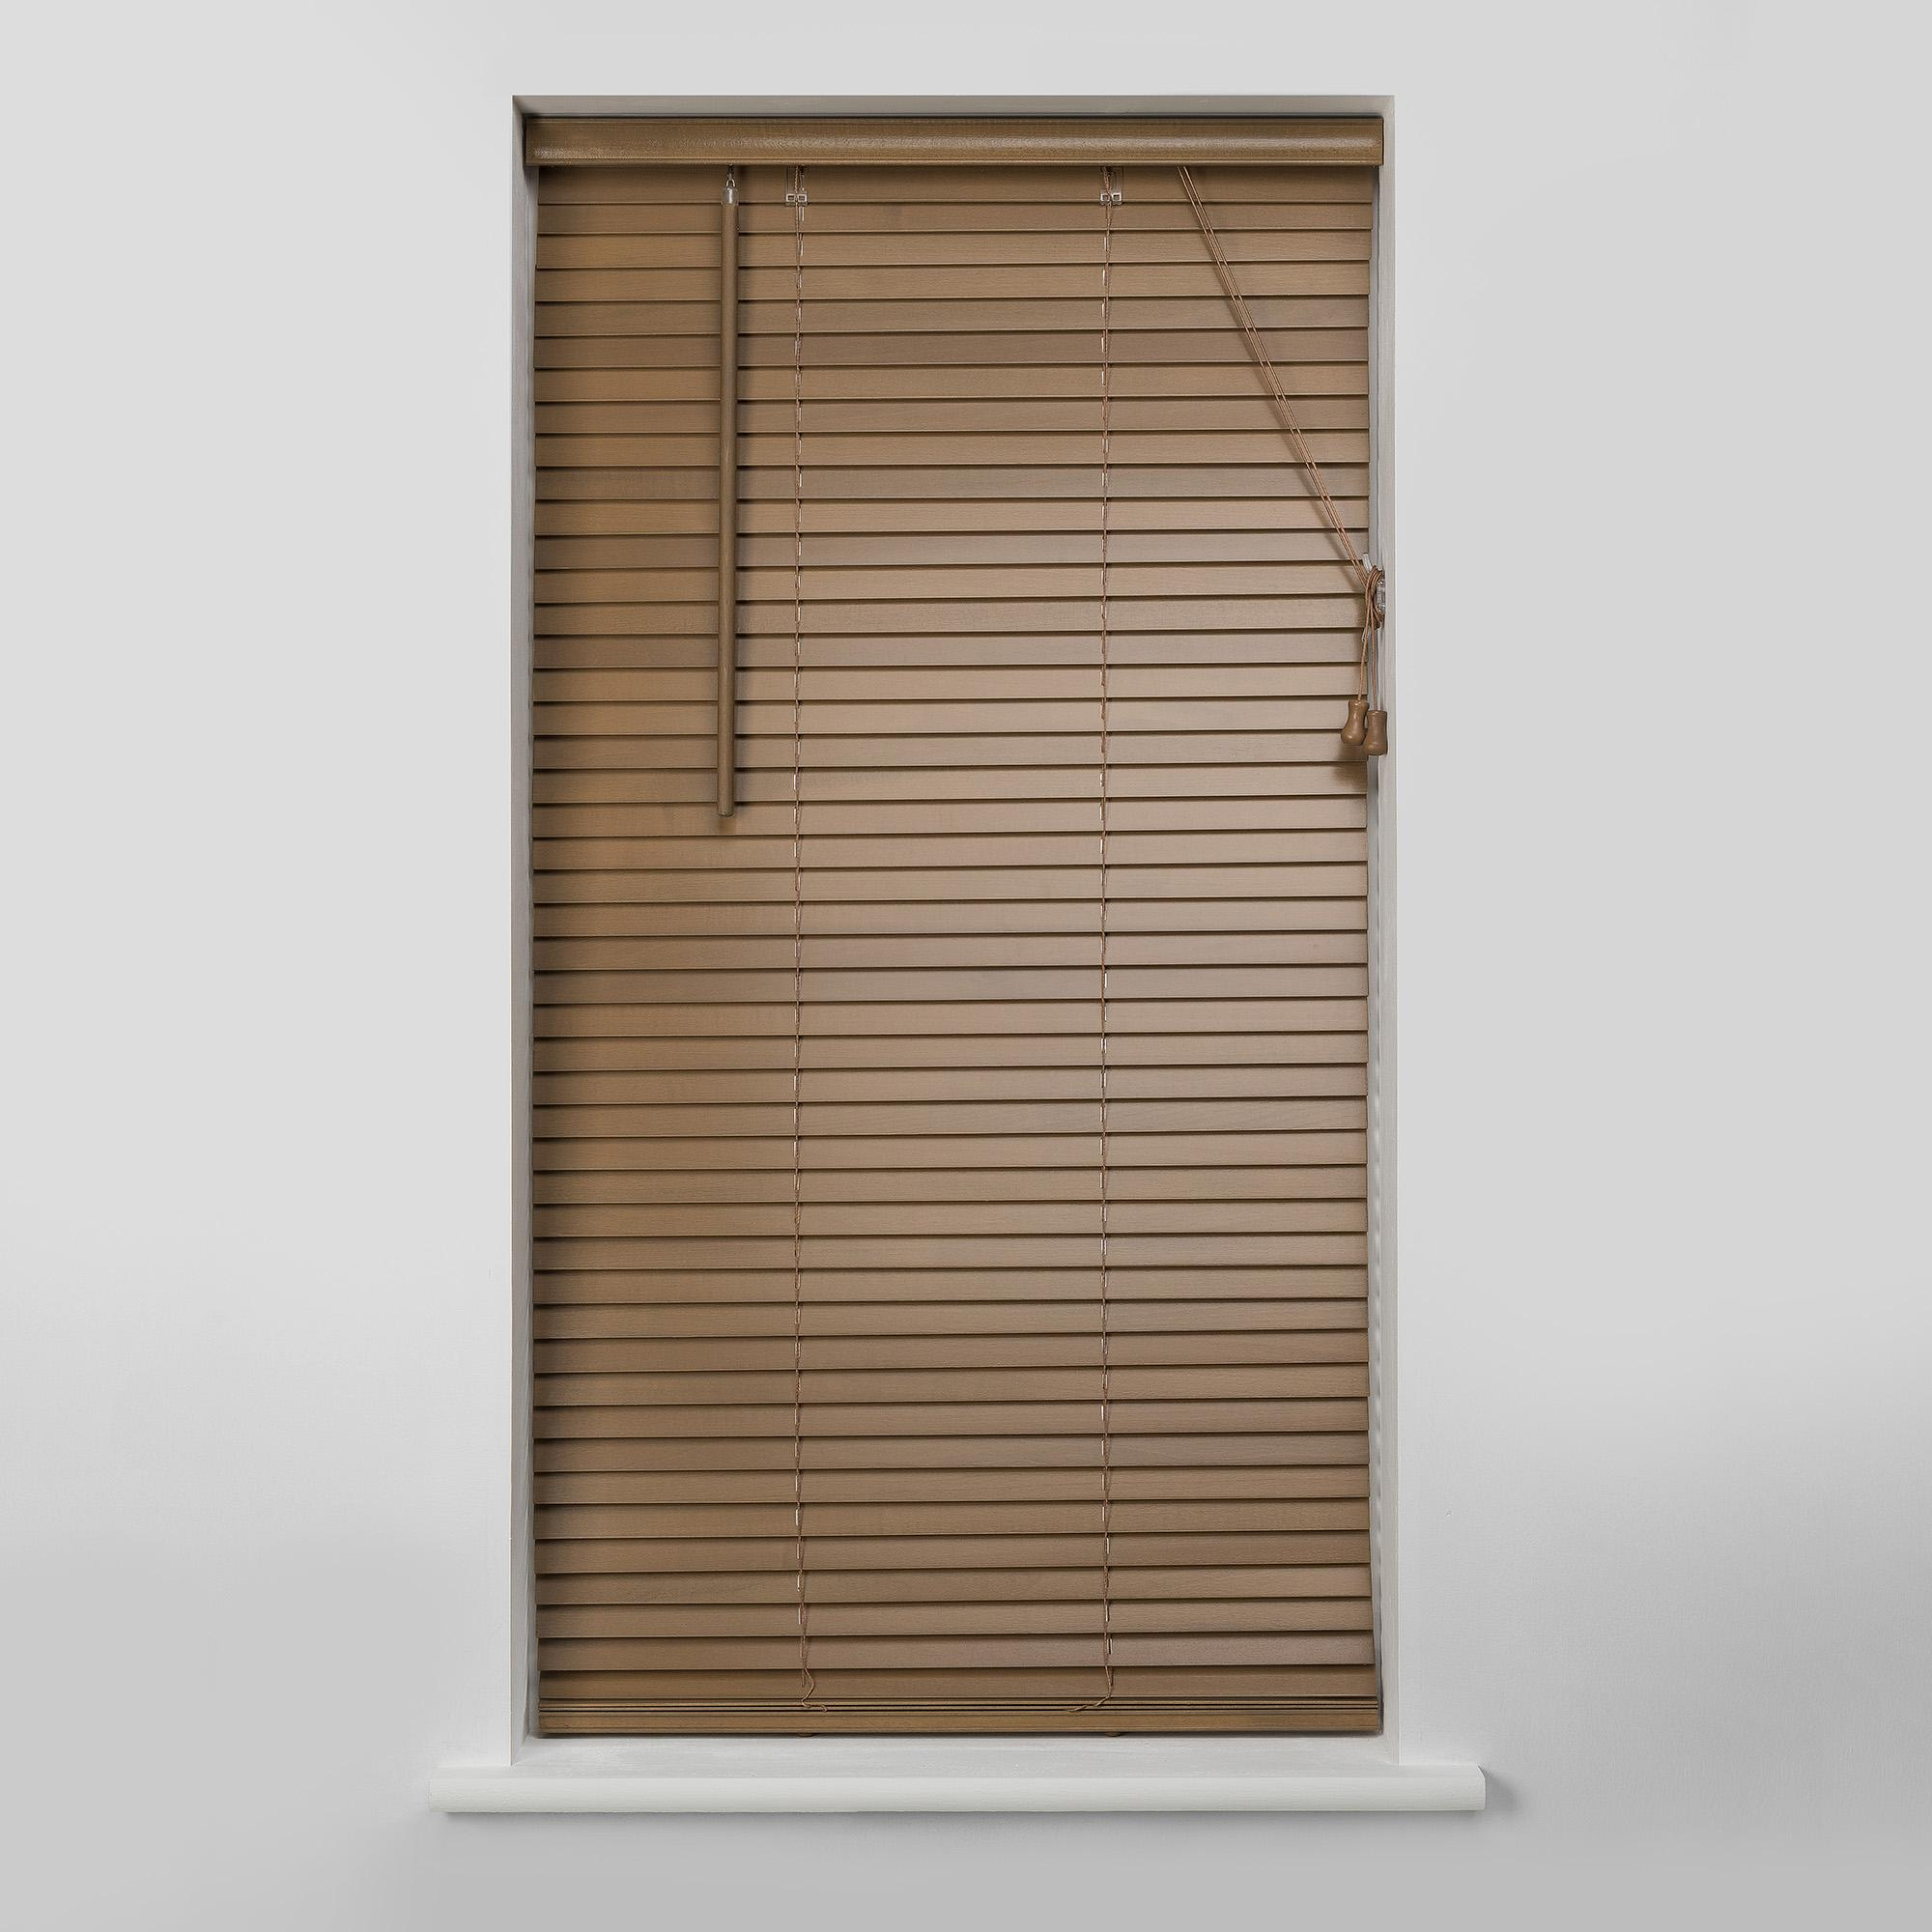 Stunning wooden venetian blinds 27mm oak wooden venetian blind pgcfjcq